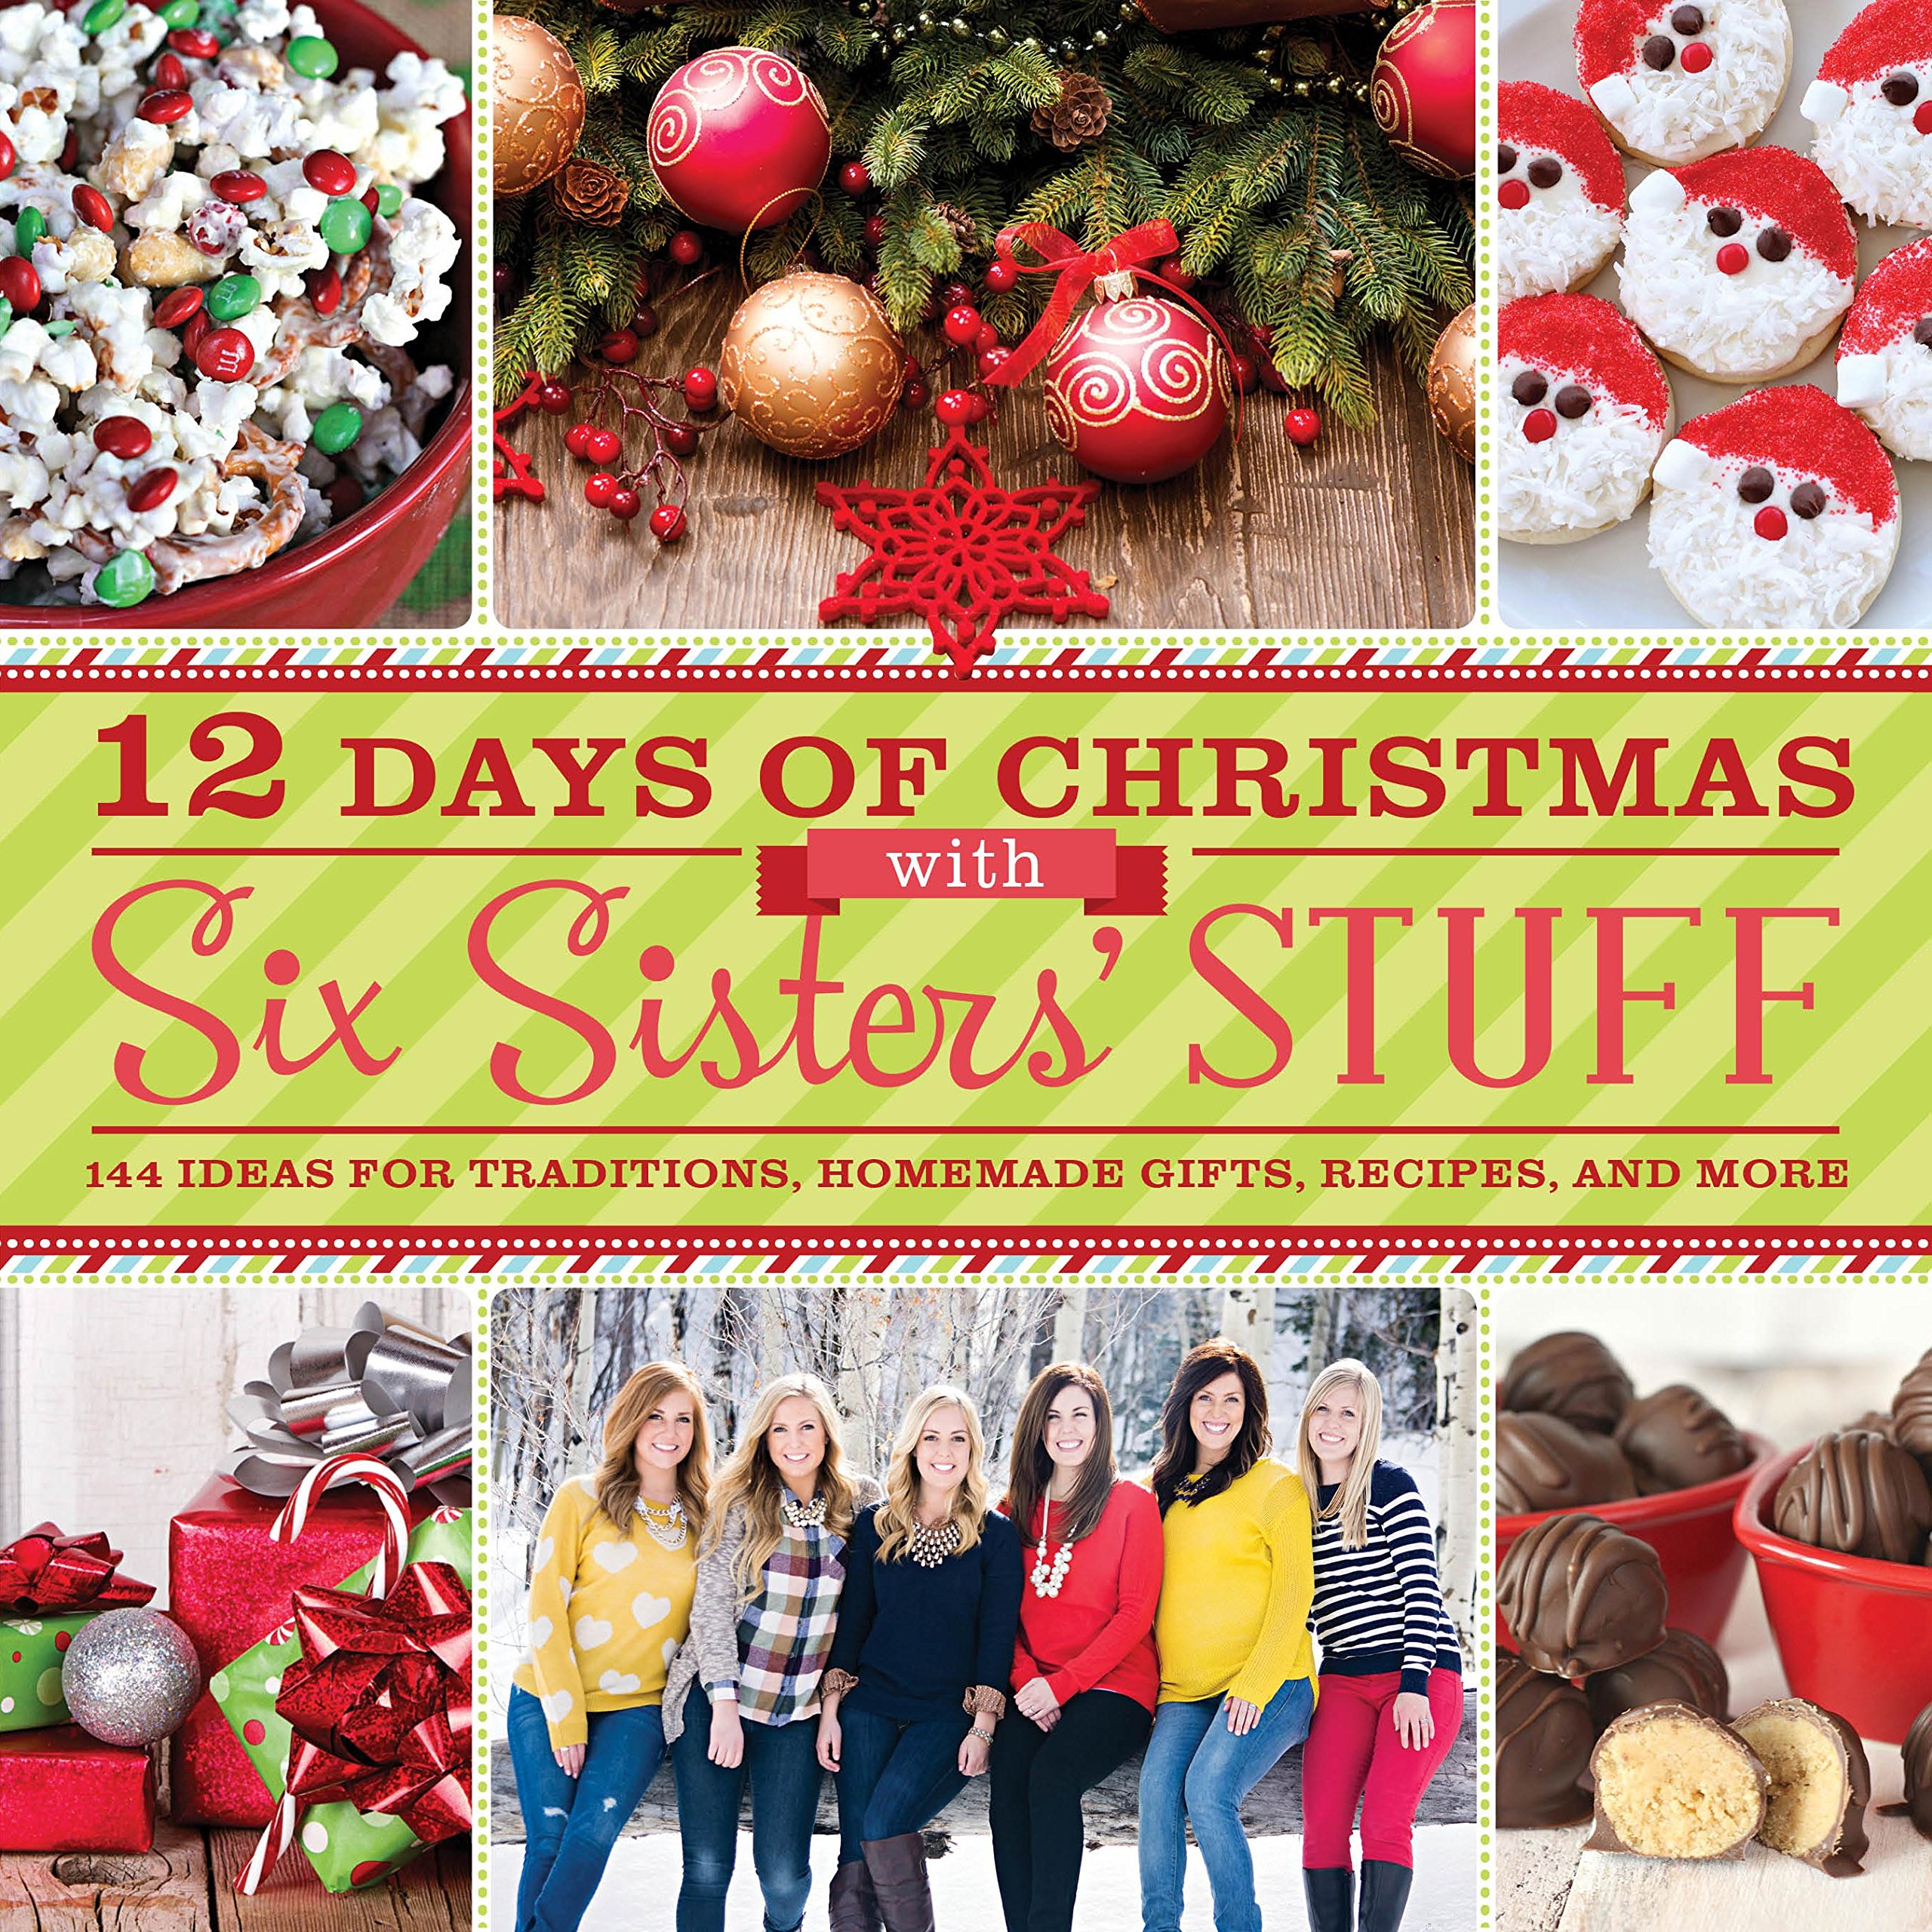 12 Days of Christmas With Six Sisters\' Stuff: Recipes, Traditions ...